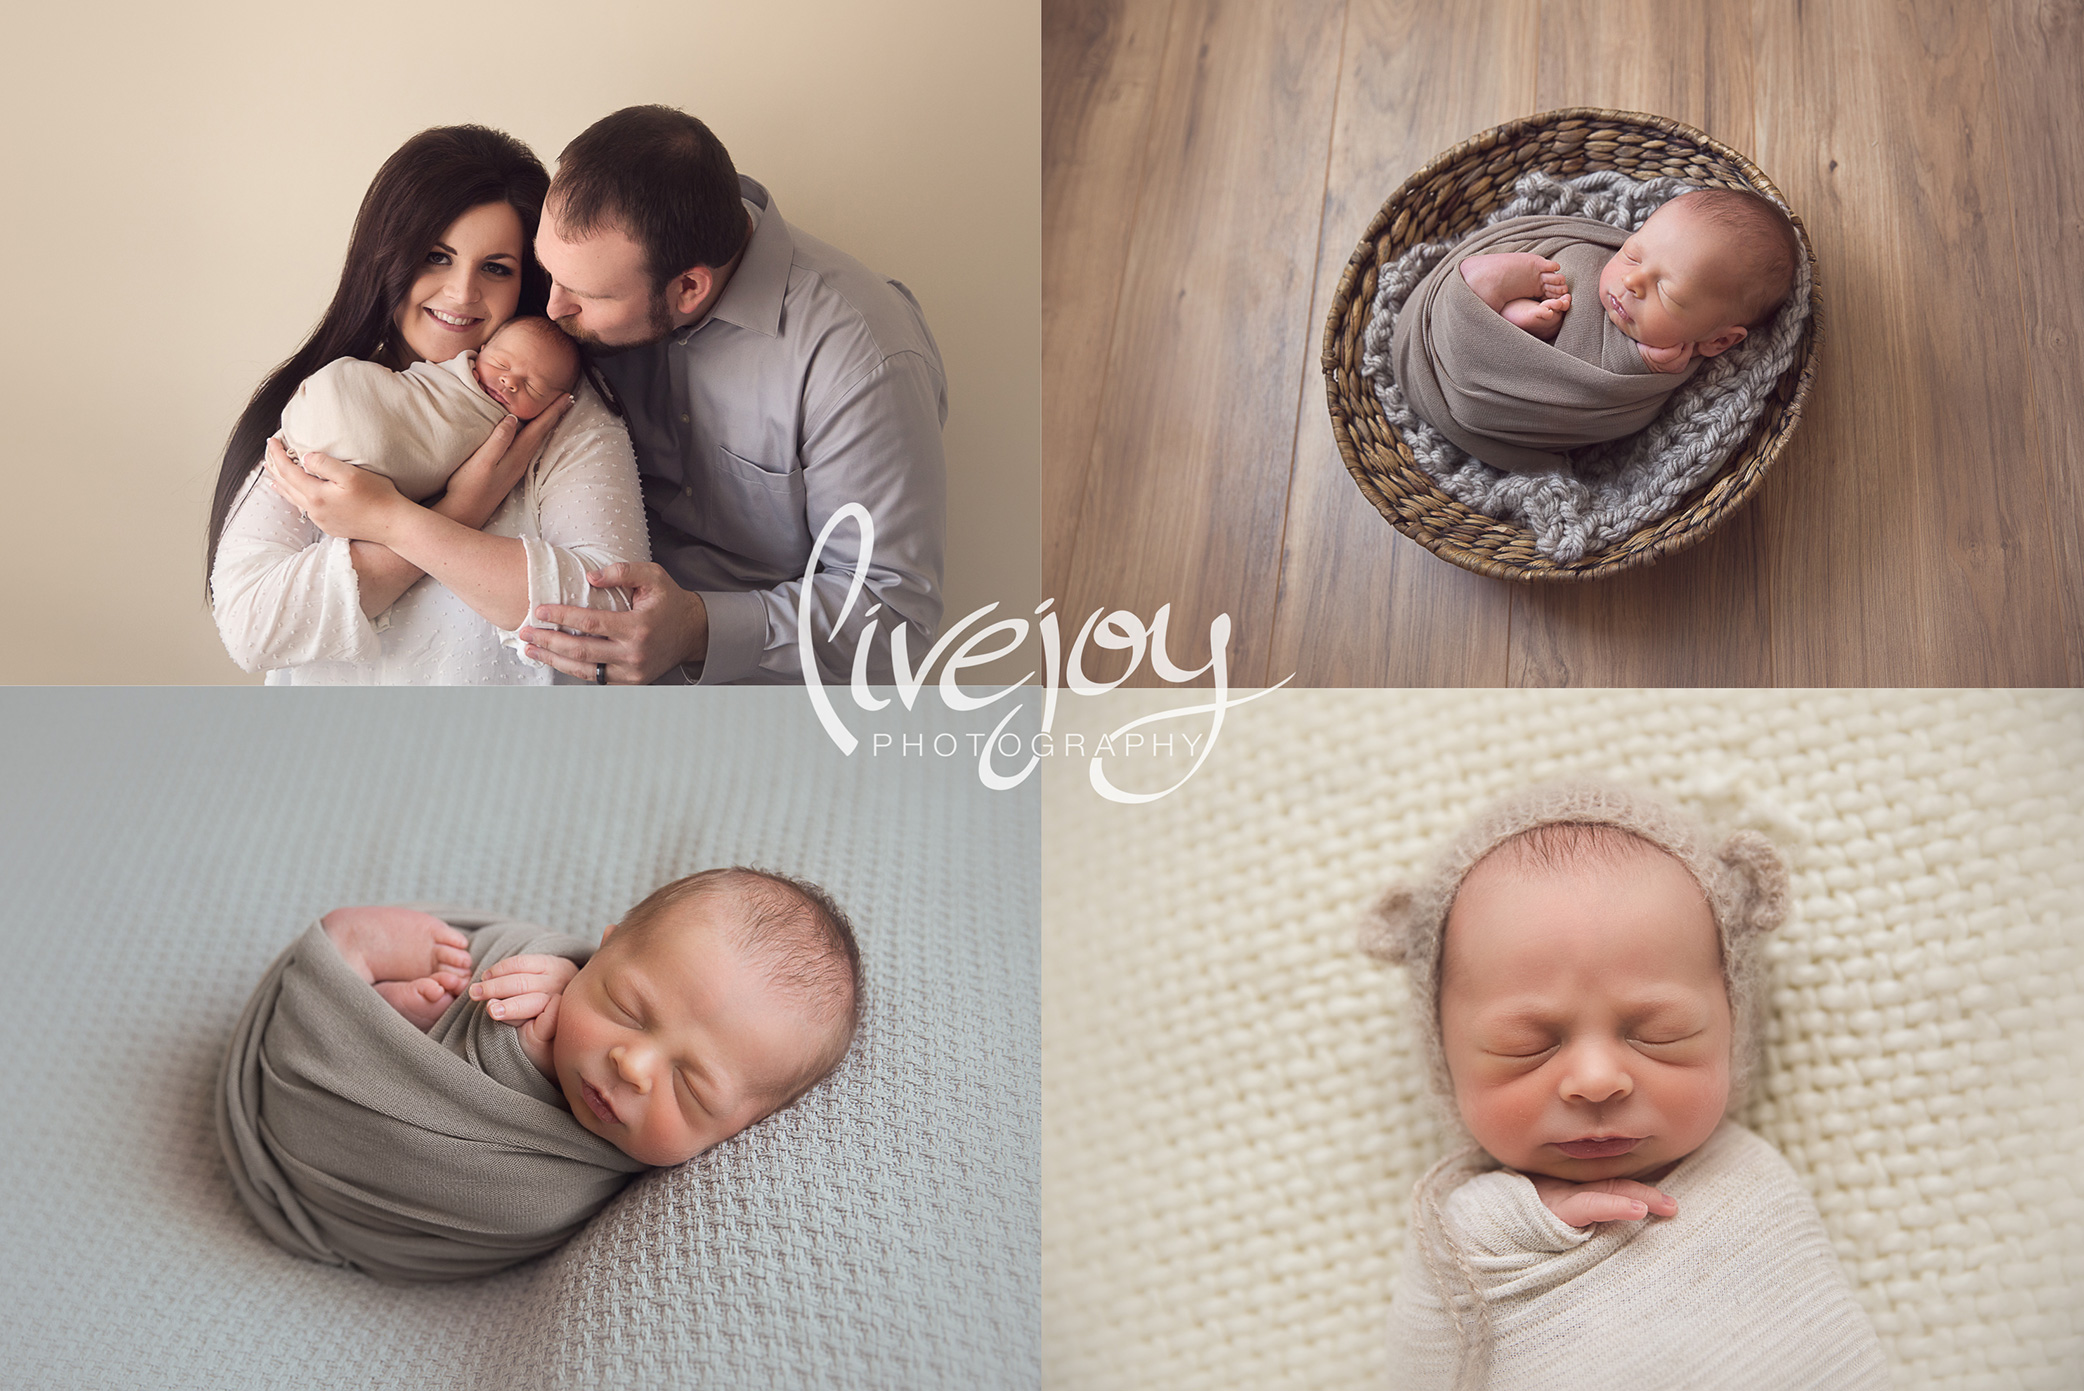 Baby Boy | Newborn Photography | Oregon | LiveJoy Photography